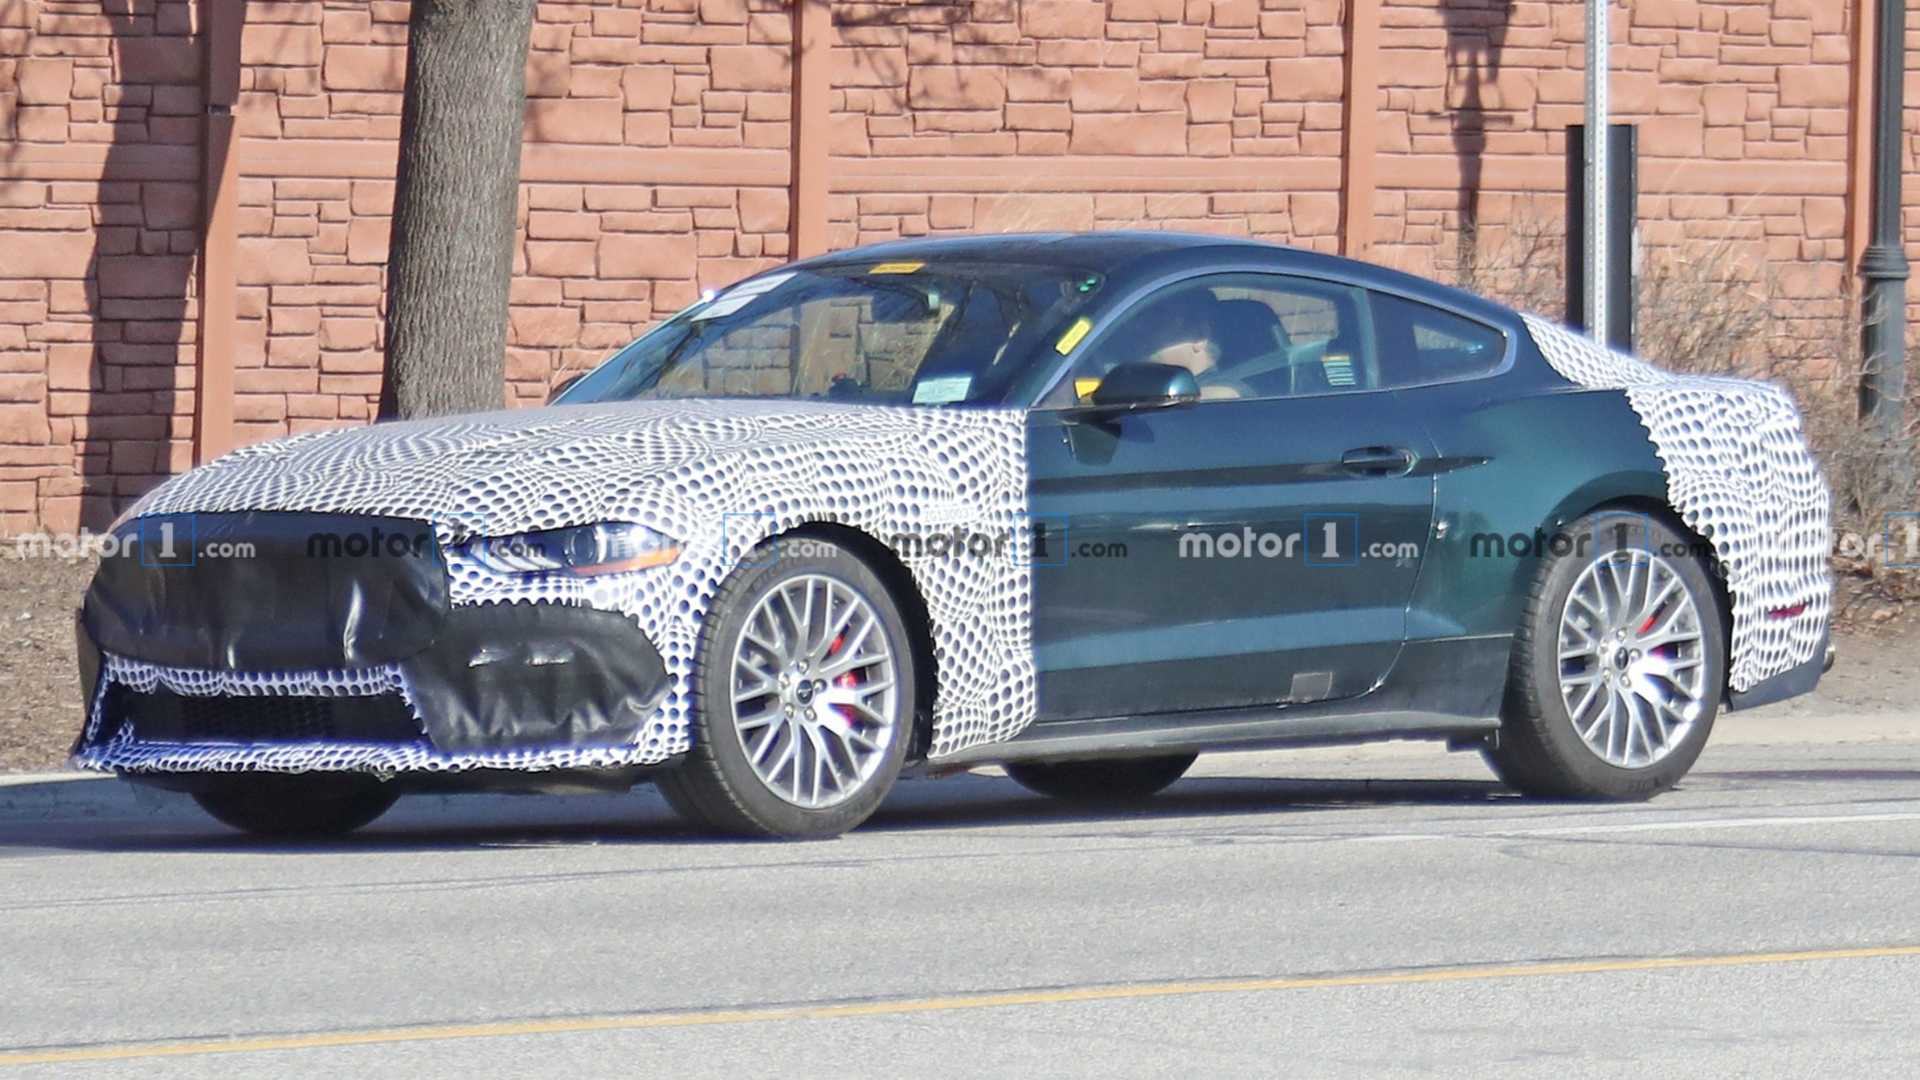 2021 Ford Mustang Mach 1 Shows Up In Leaked VIN Decoder ...